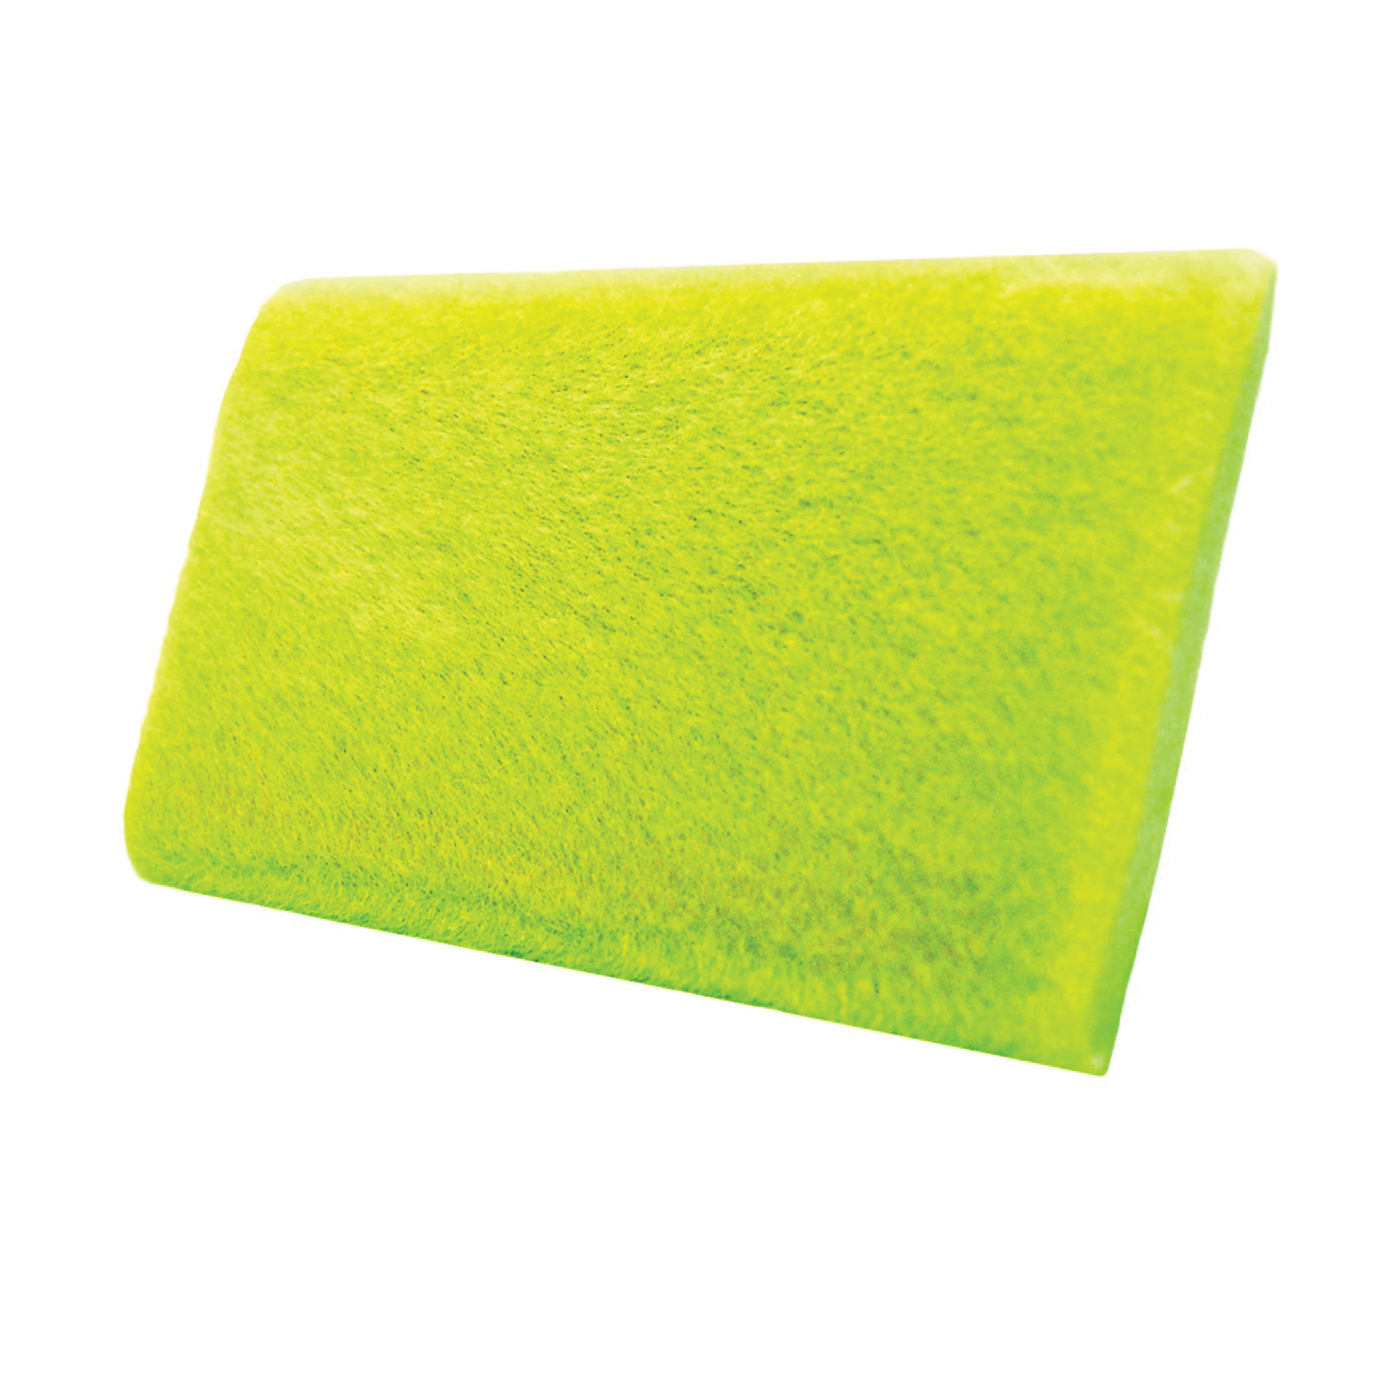 Picture of SHUR-LINE 760C Deck and Fence Pad Refill, 7 in L Pad